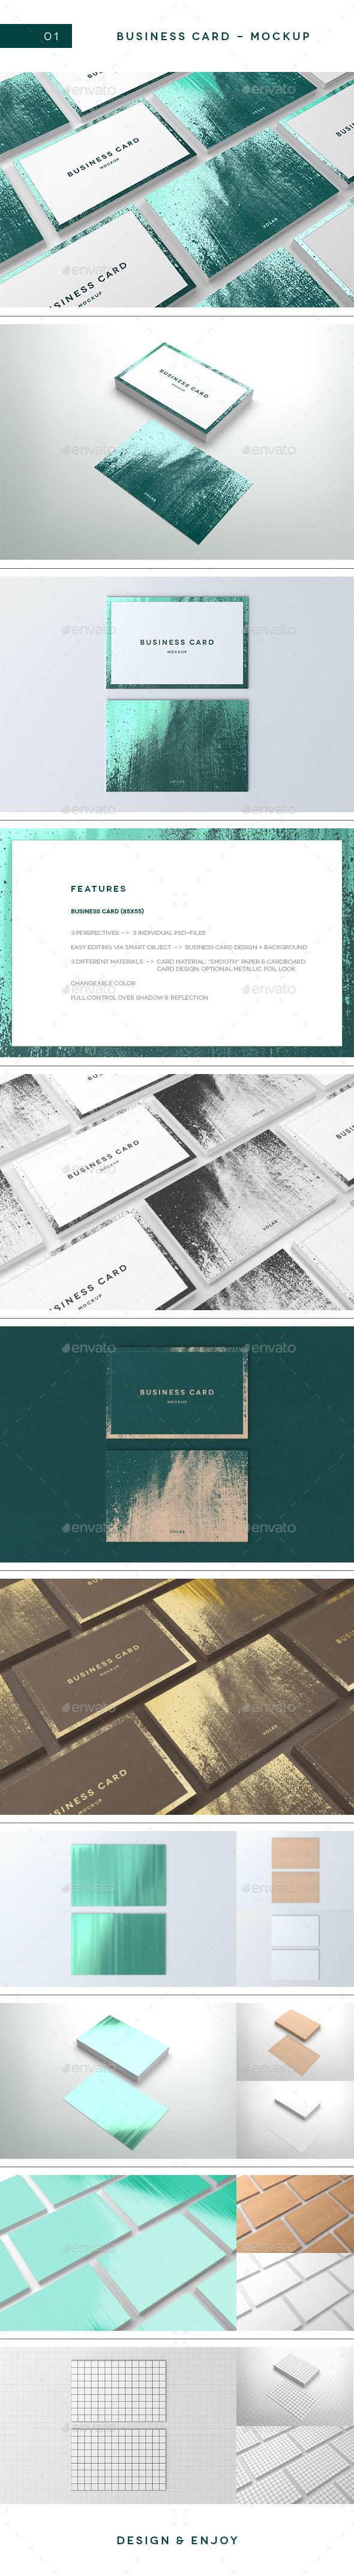 Business Card Mockup — Photoshop PSD #branding #presentation • Available here → https://graphicriver.net/item/business-card-mockup/18795582?ref=pxcr